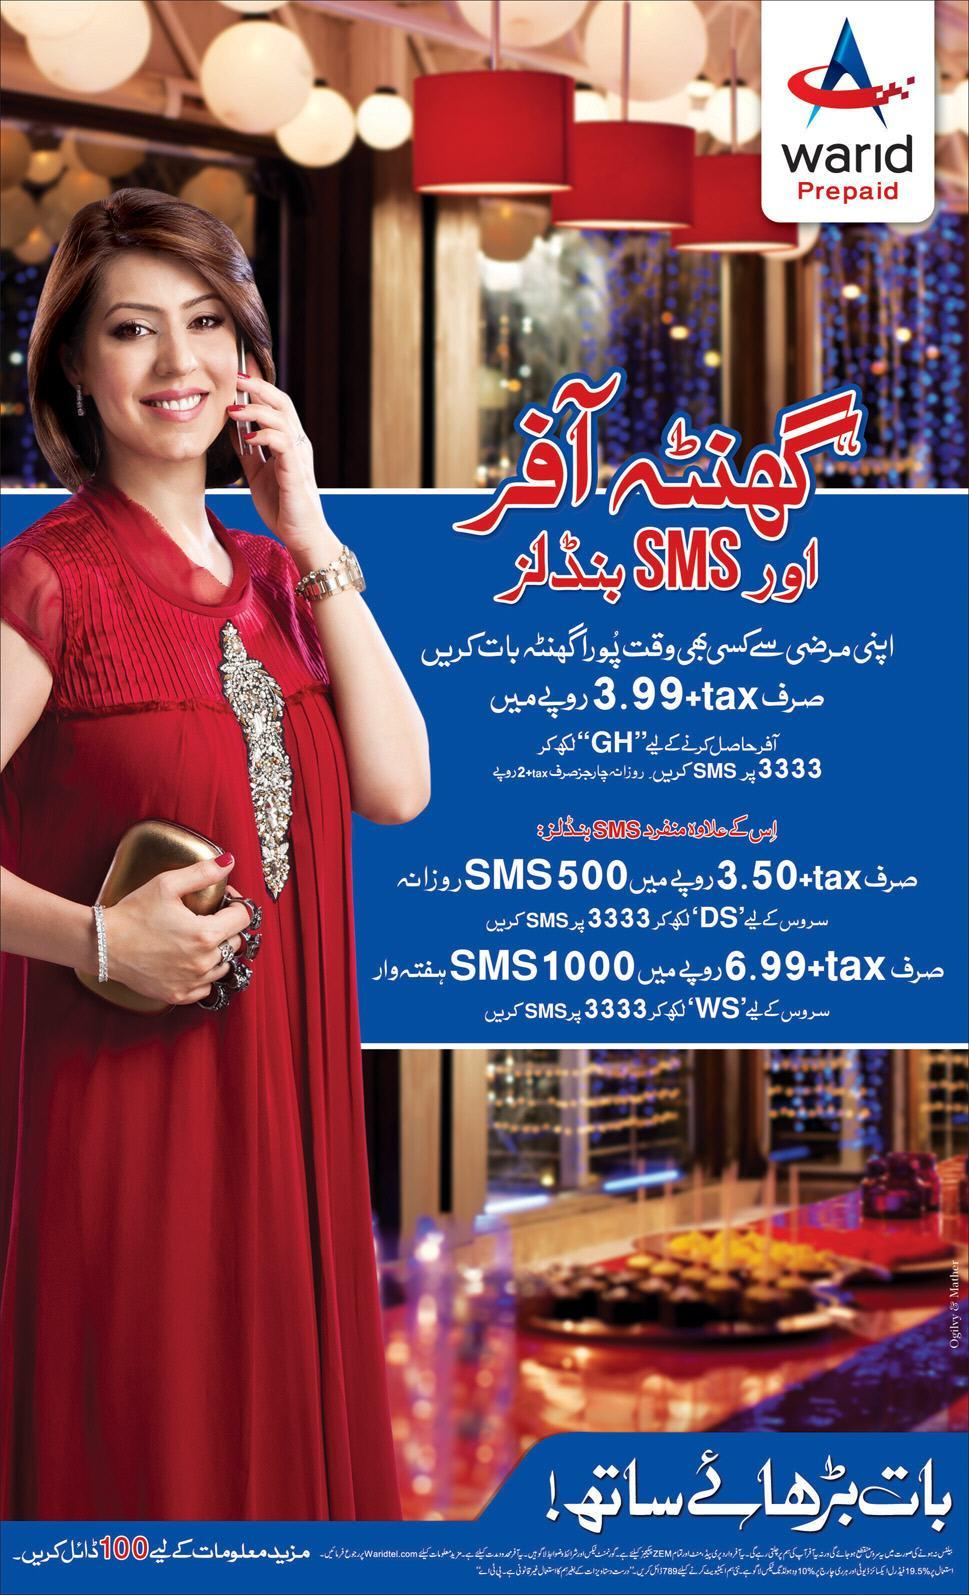 warid ganta and sms offer Warid Brings Ghanta Offer and SMS Bundles for Prepaid Customers